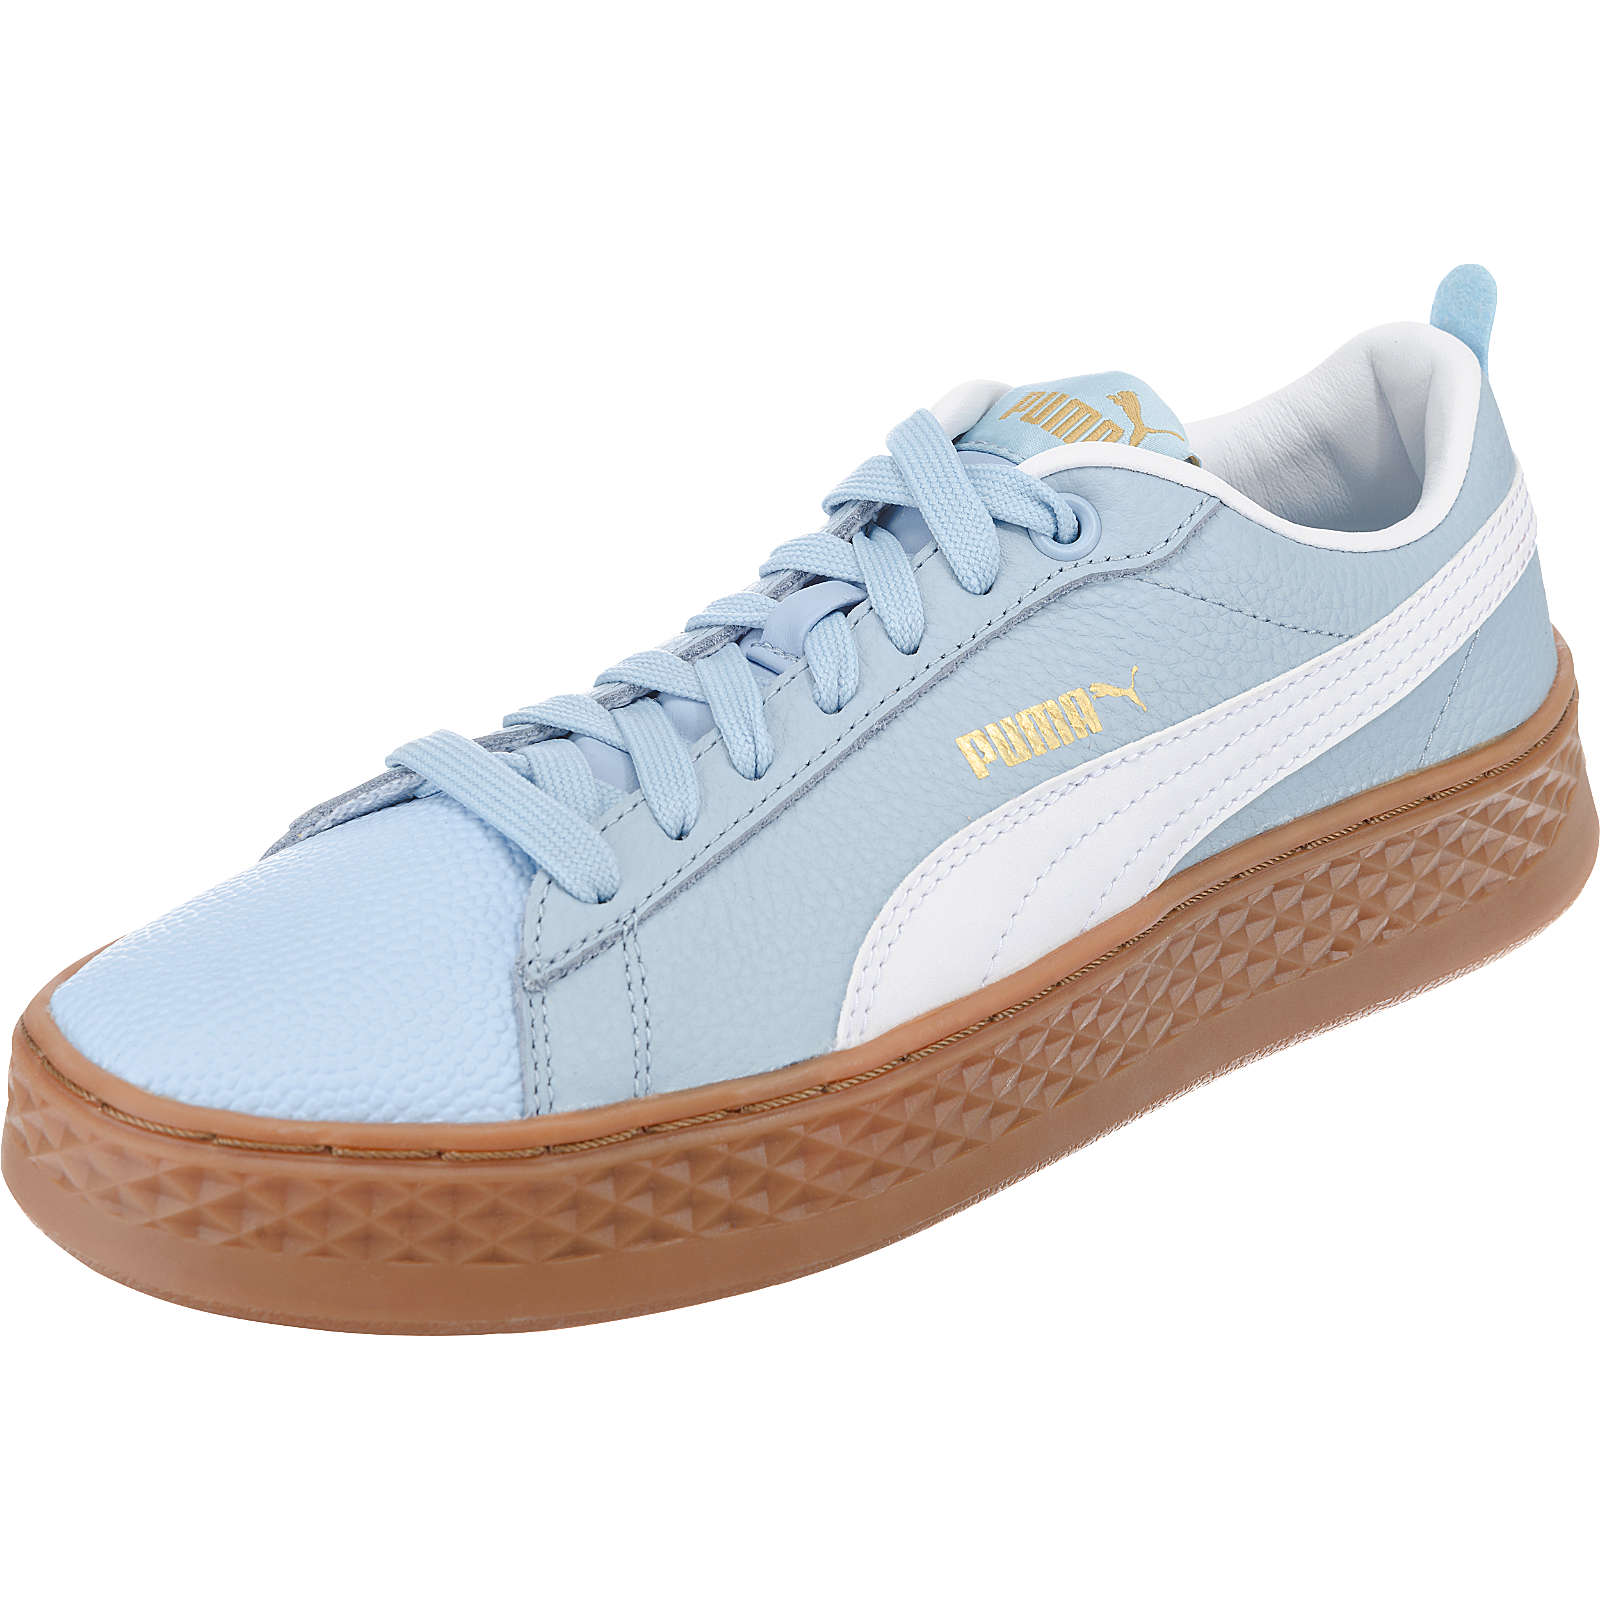 PUMA Sneakers Low hellblau Damen Gr. 39